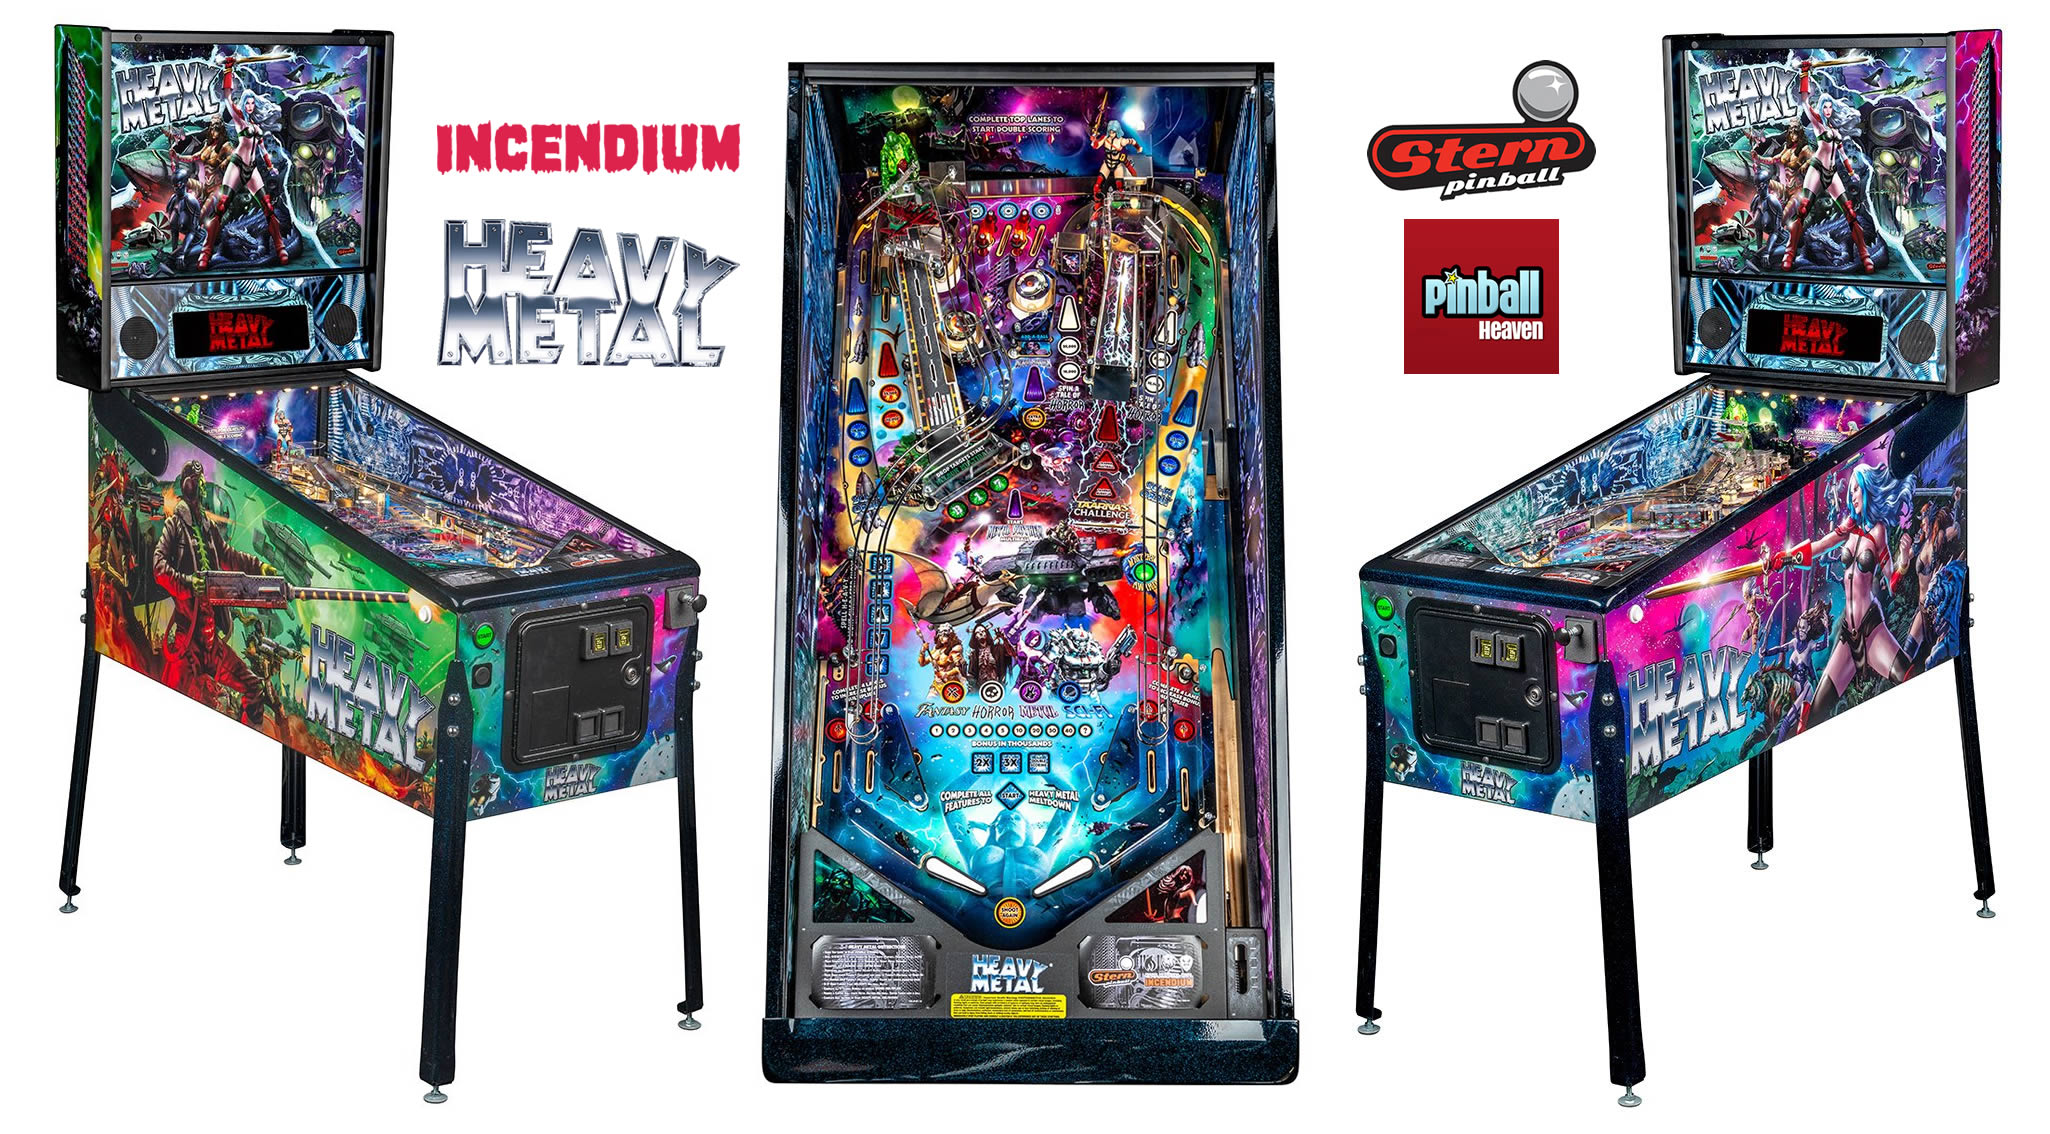 Heavy Metal Pinball Machine Announced